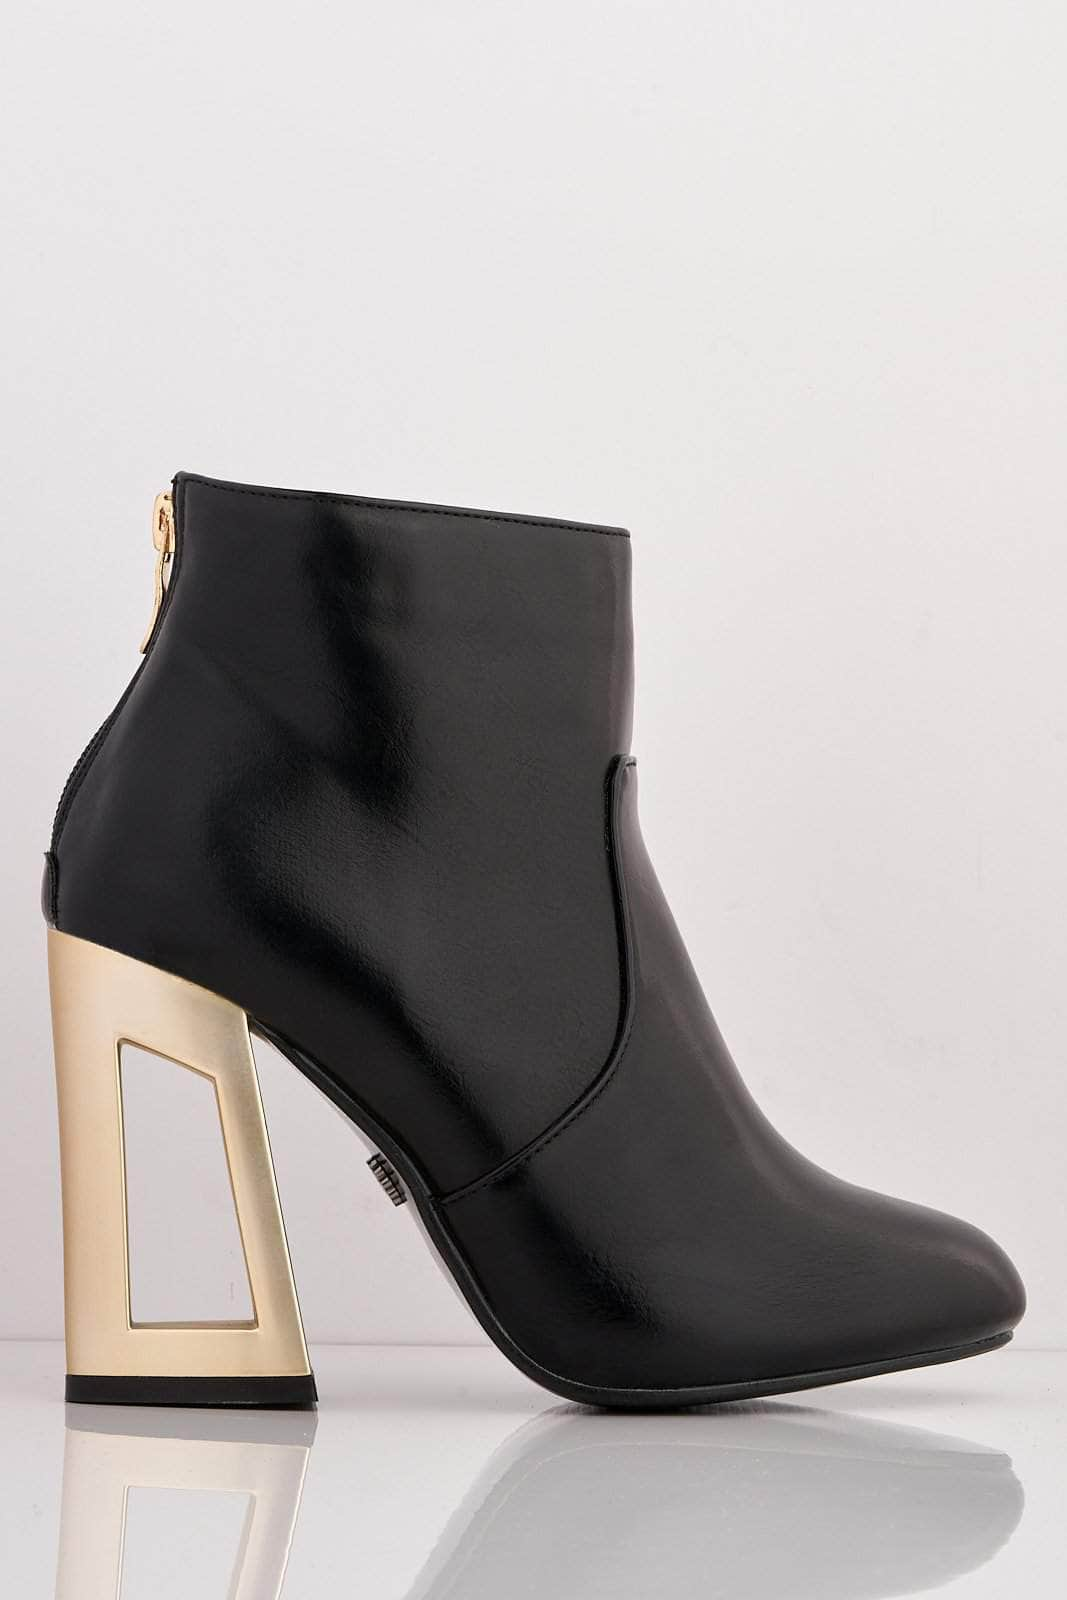 Black Pu Ankle Boots with Gold Cut Out Heel